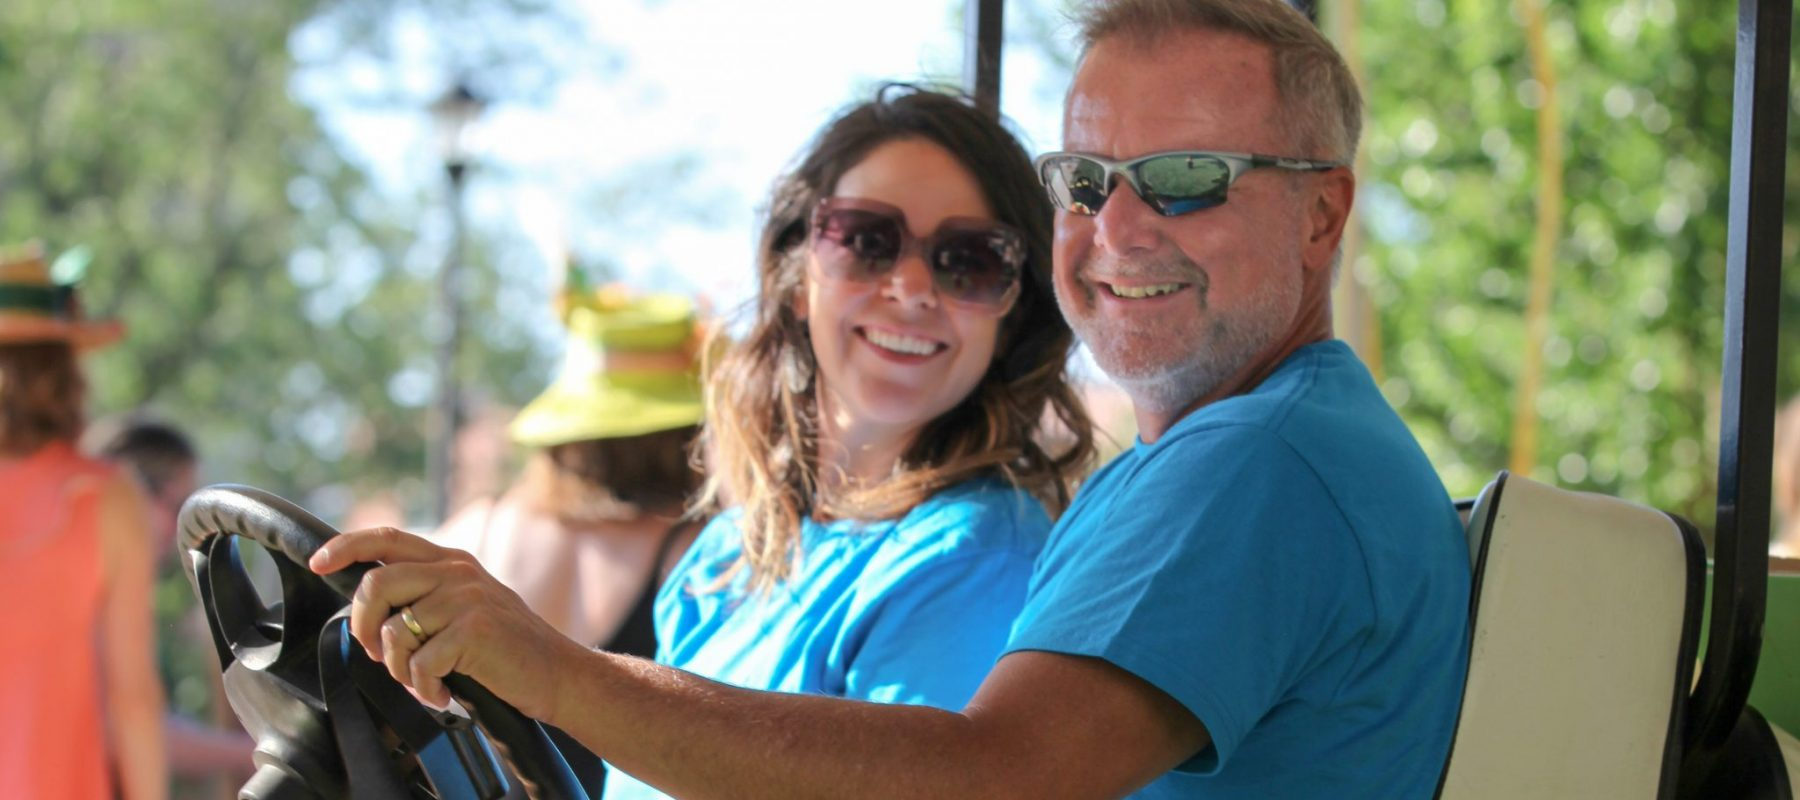 Two people in a golf cart